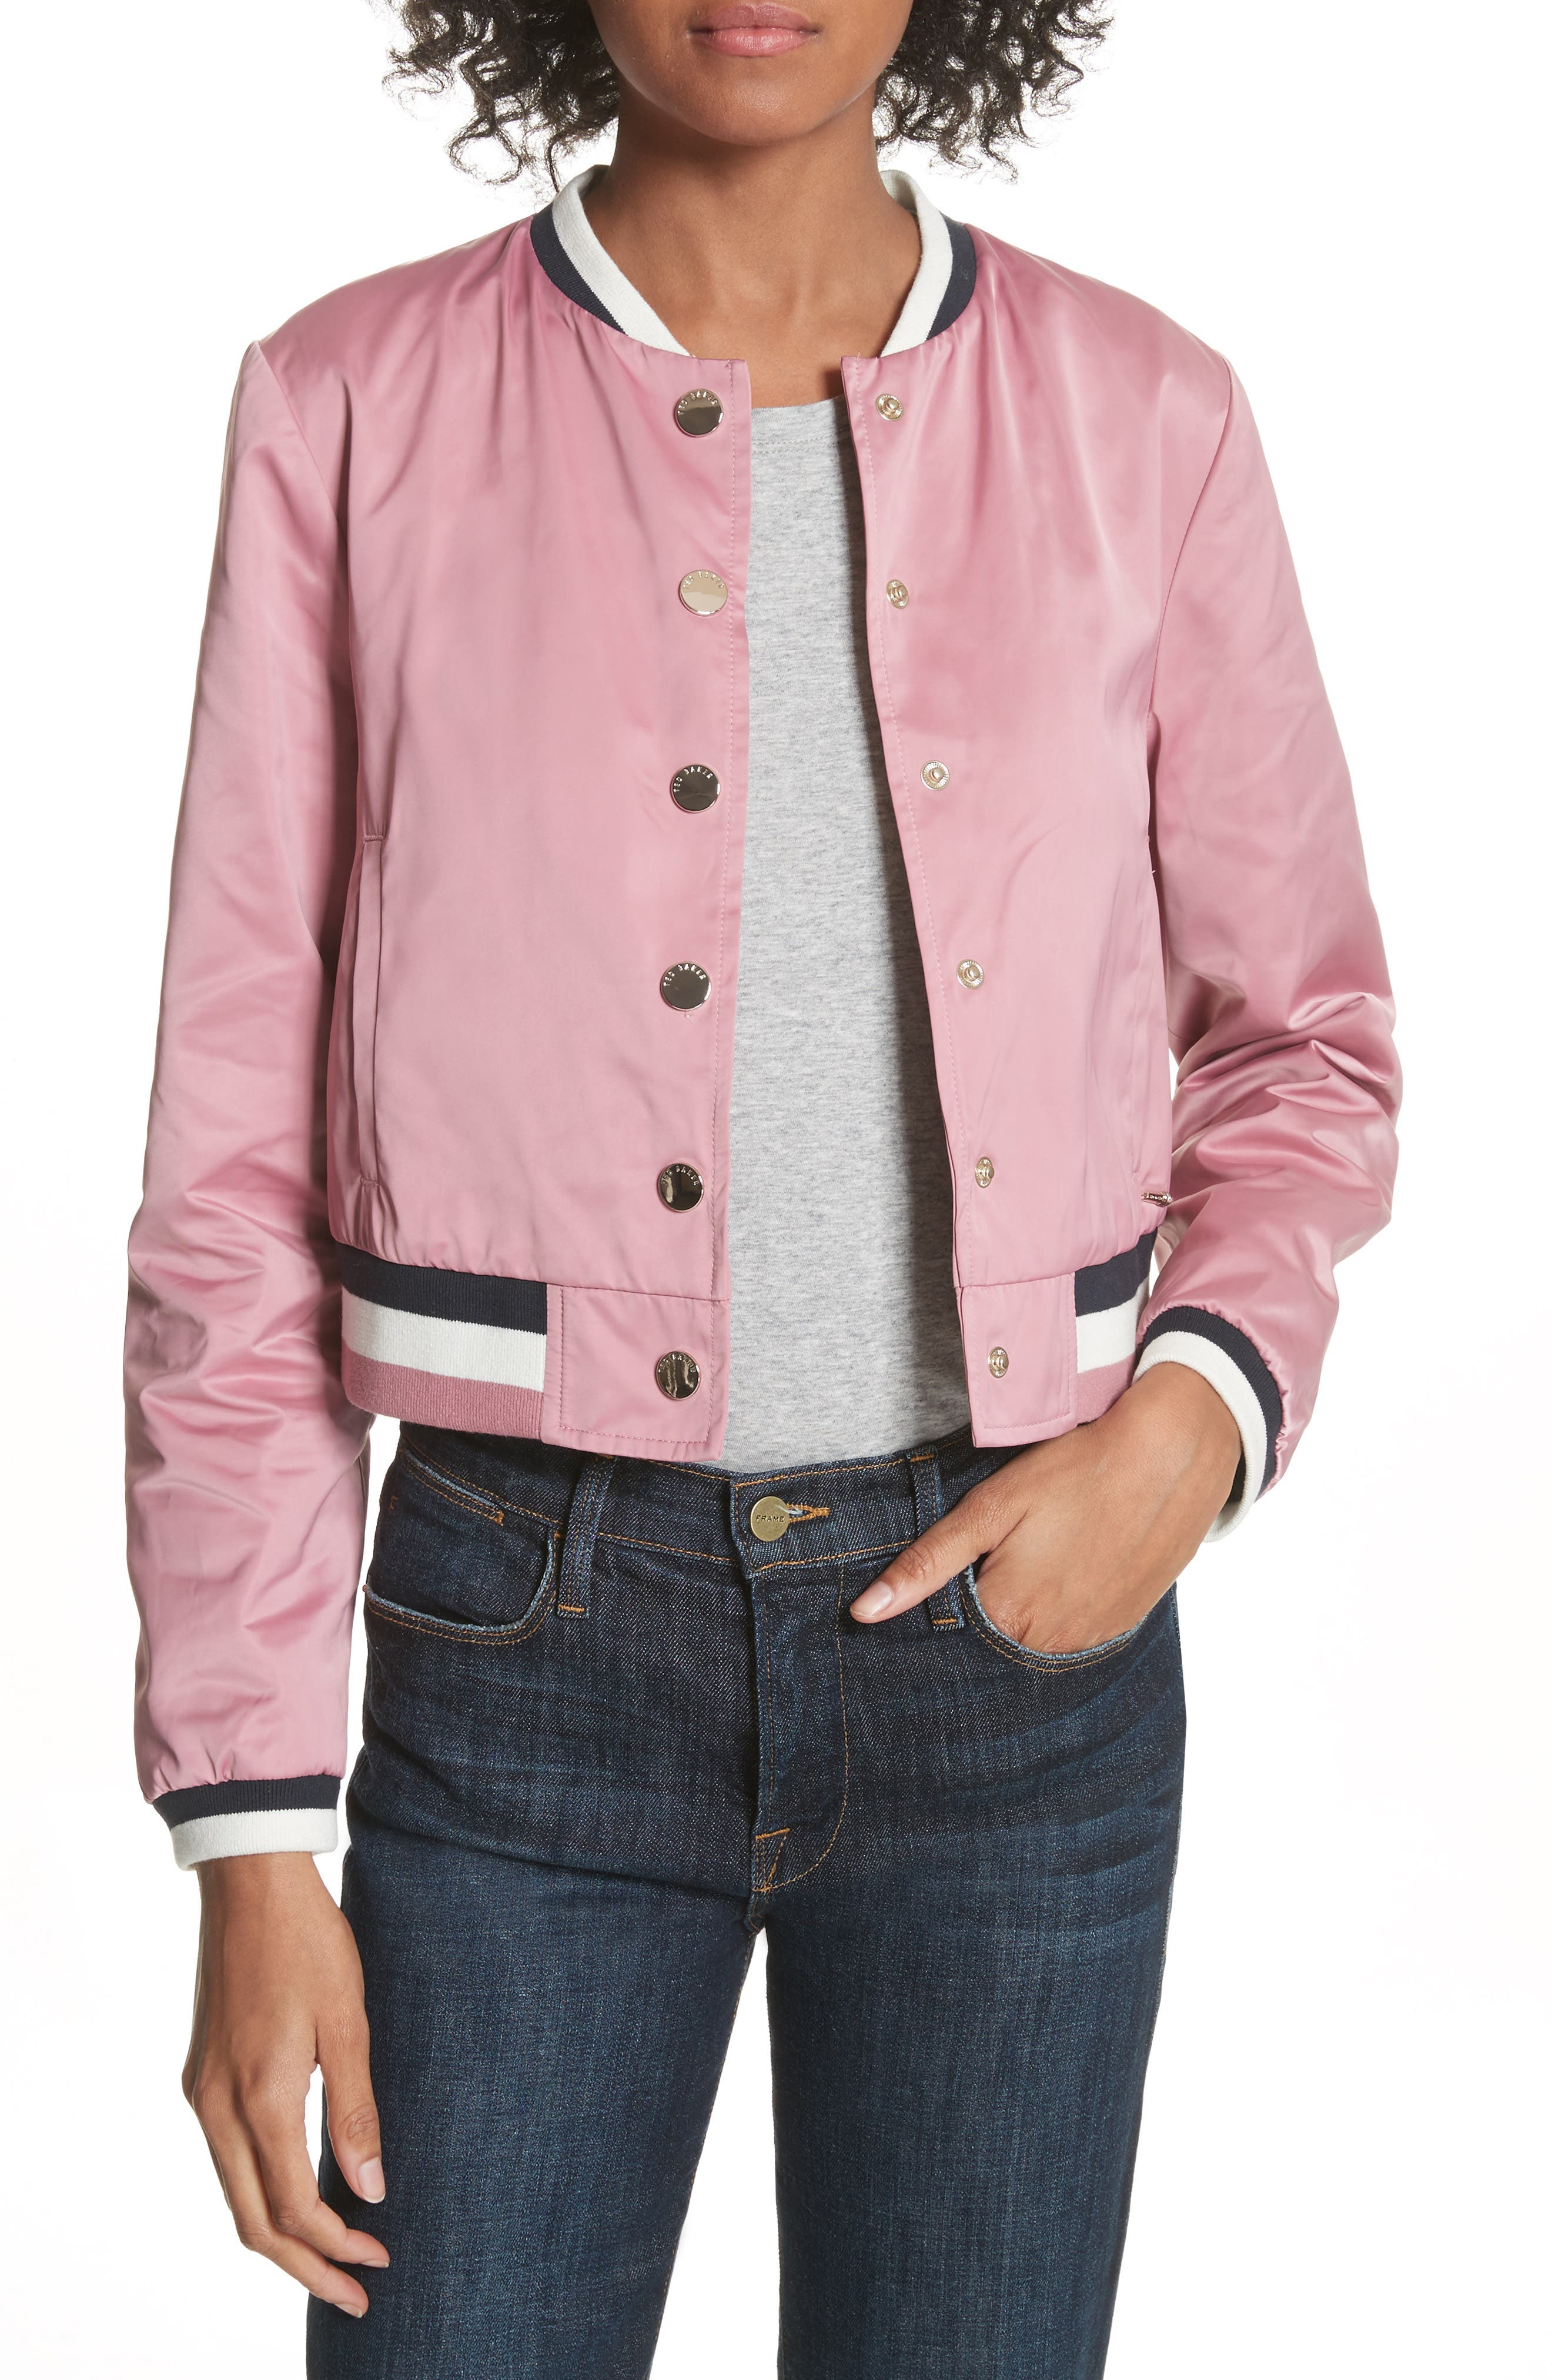 Colour by Numbers Bomber Jacket,                         Main,                         color, Dusky Pink